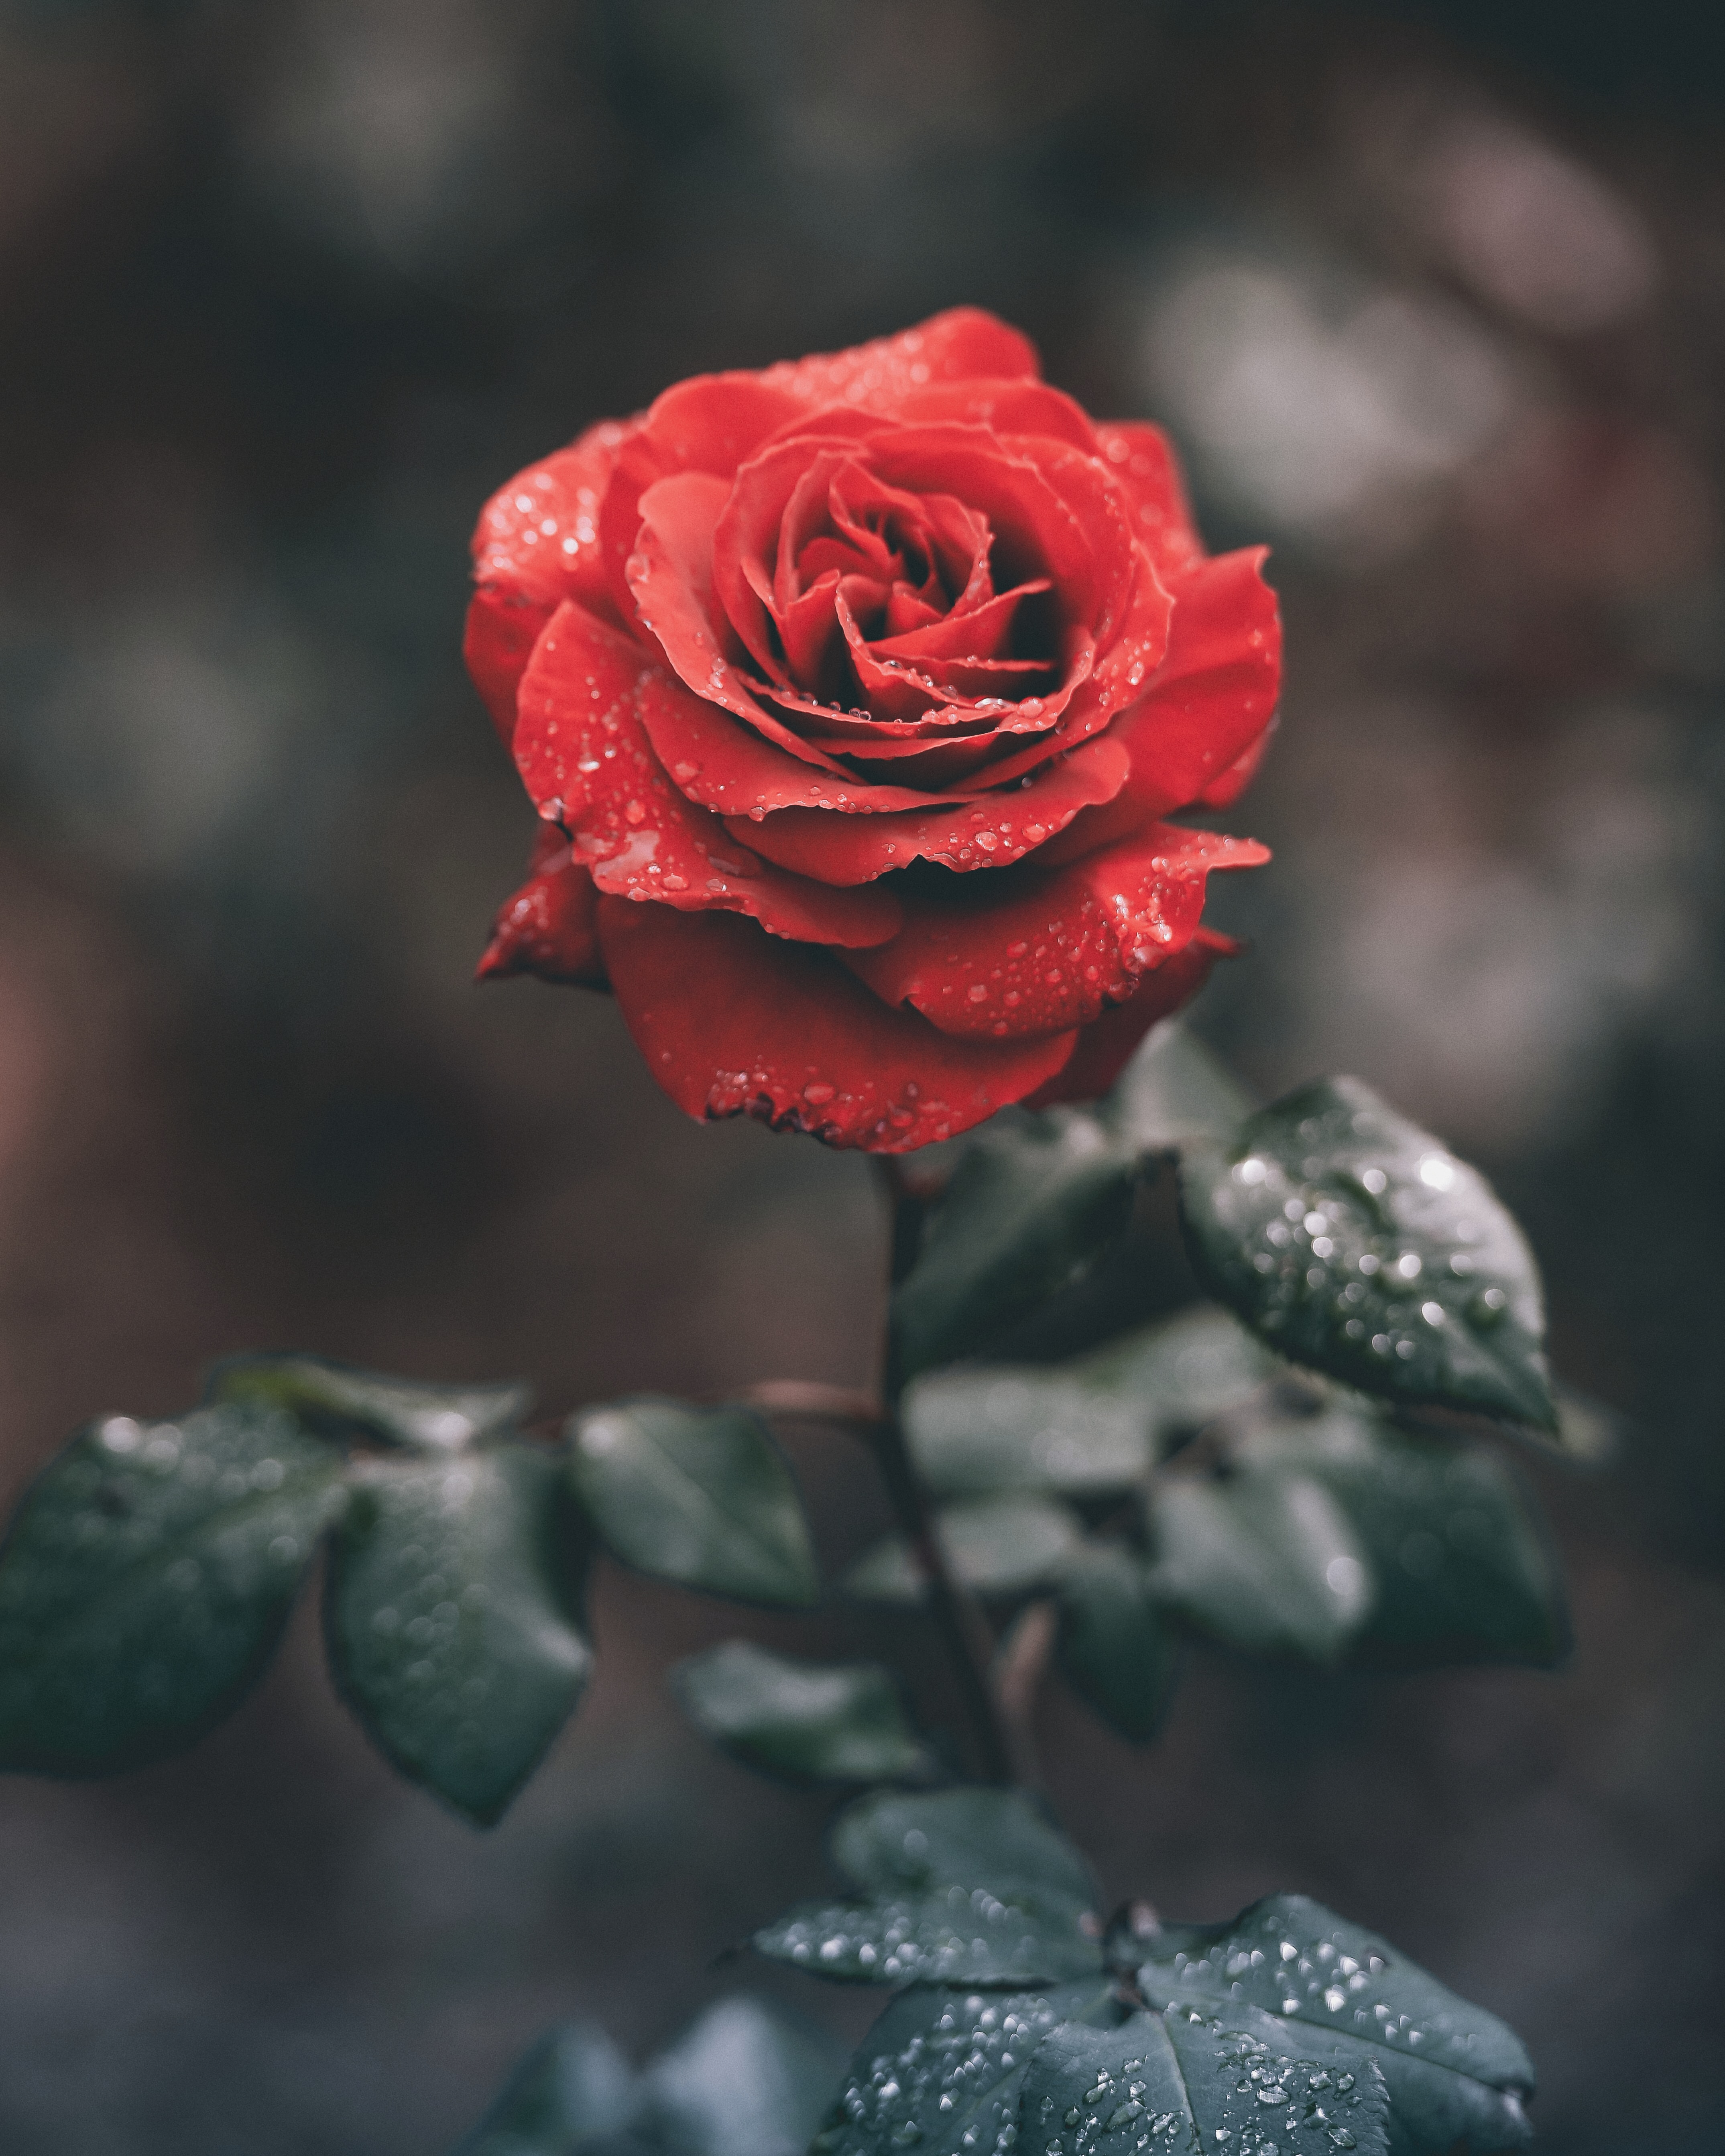 Close-up of a red rose with its petals and leaves covered in waterdrops